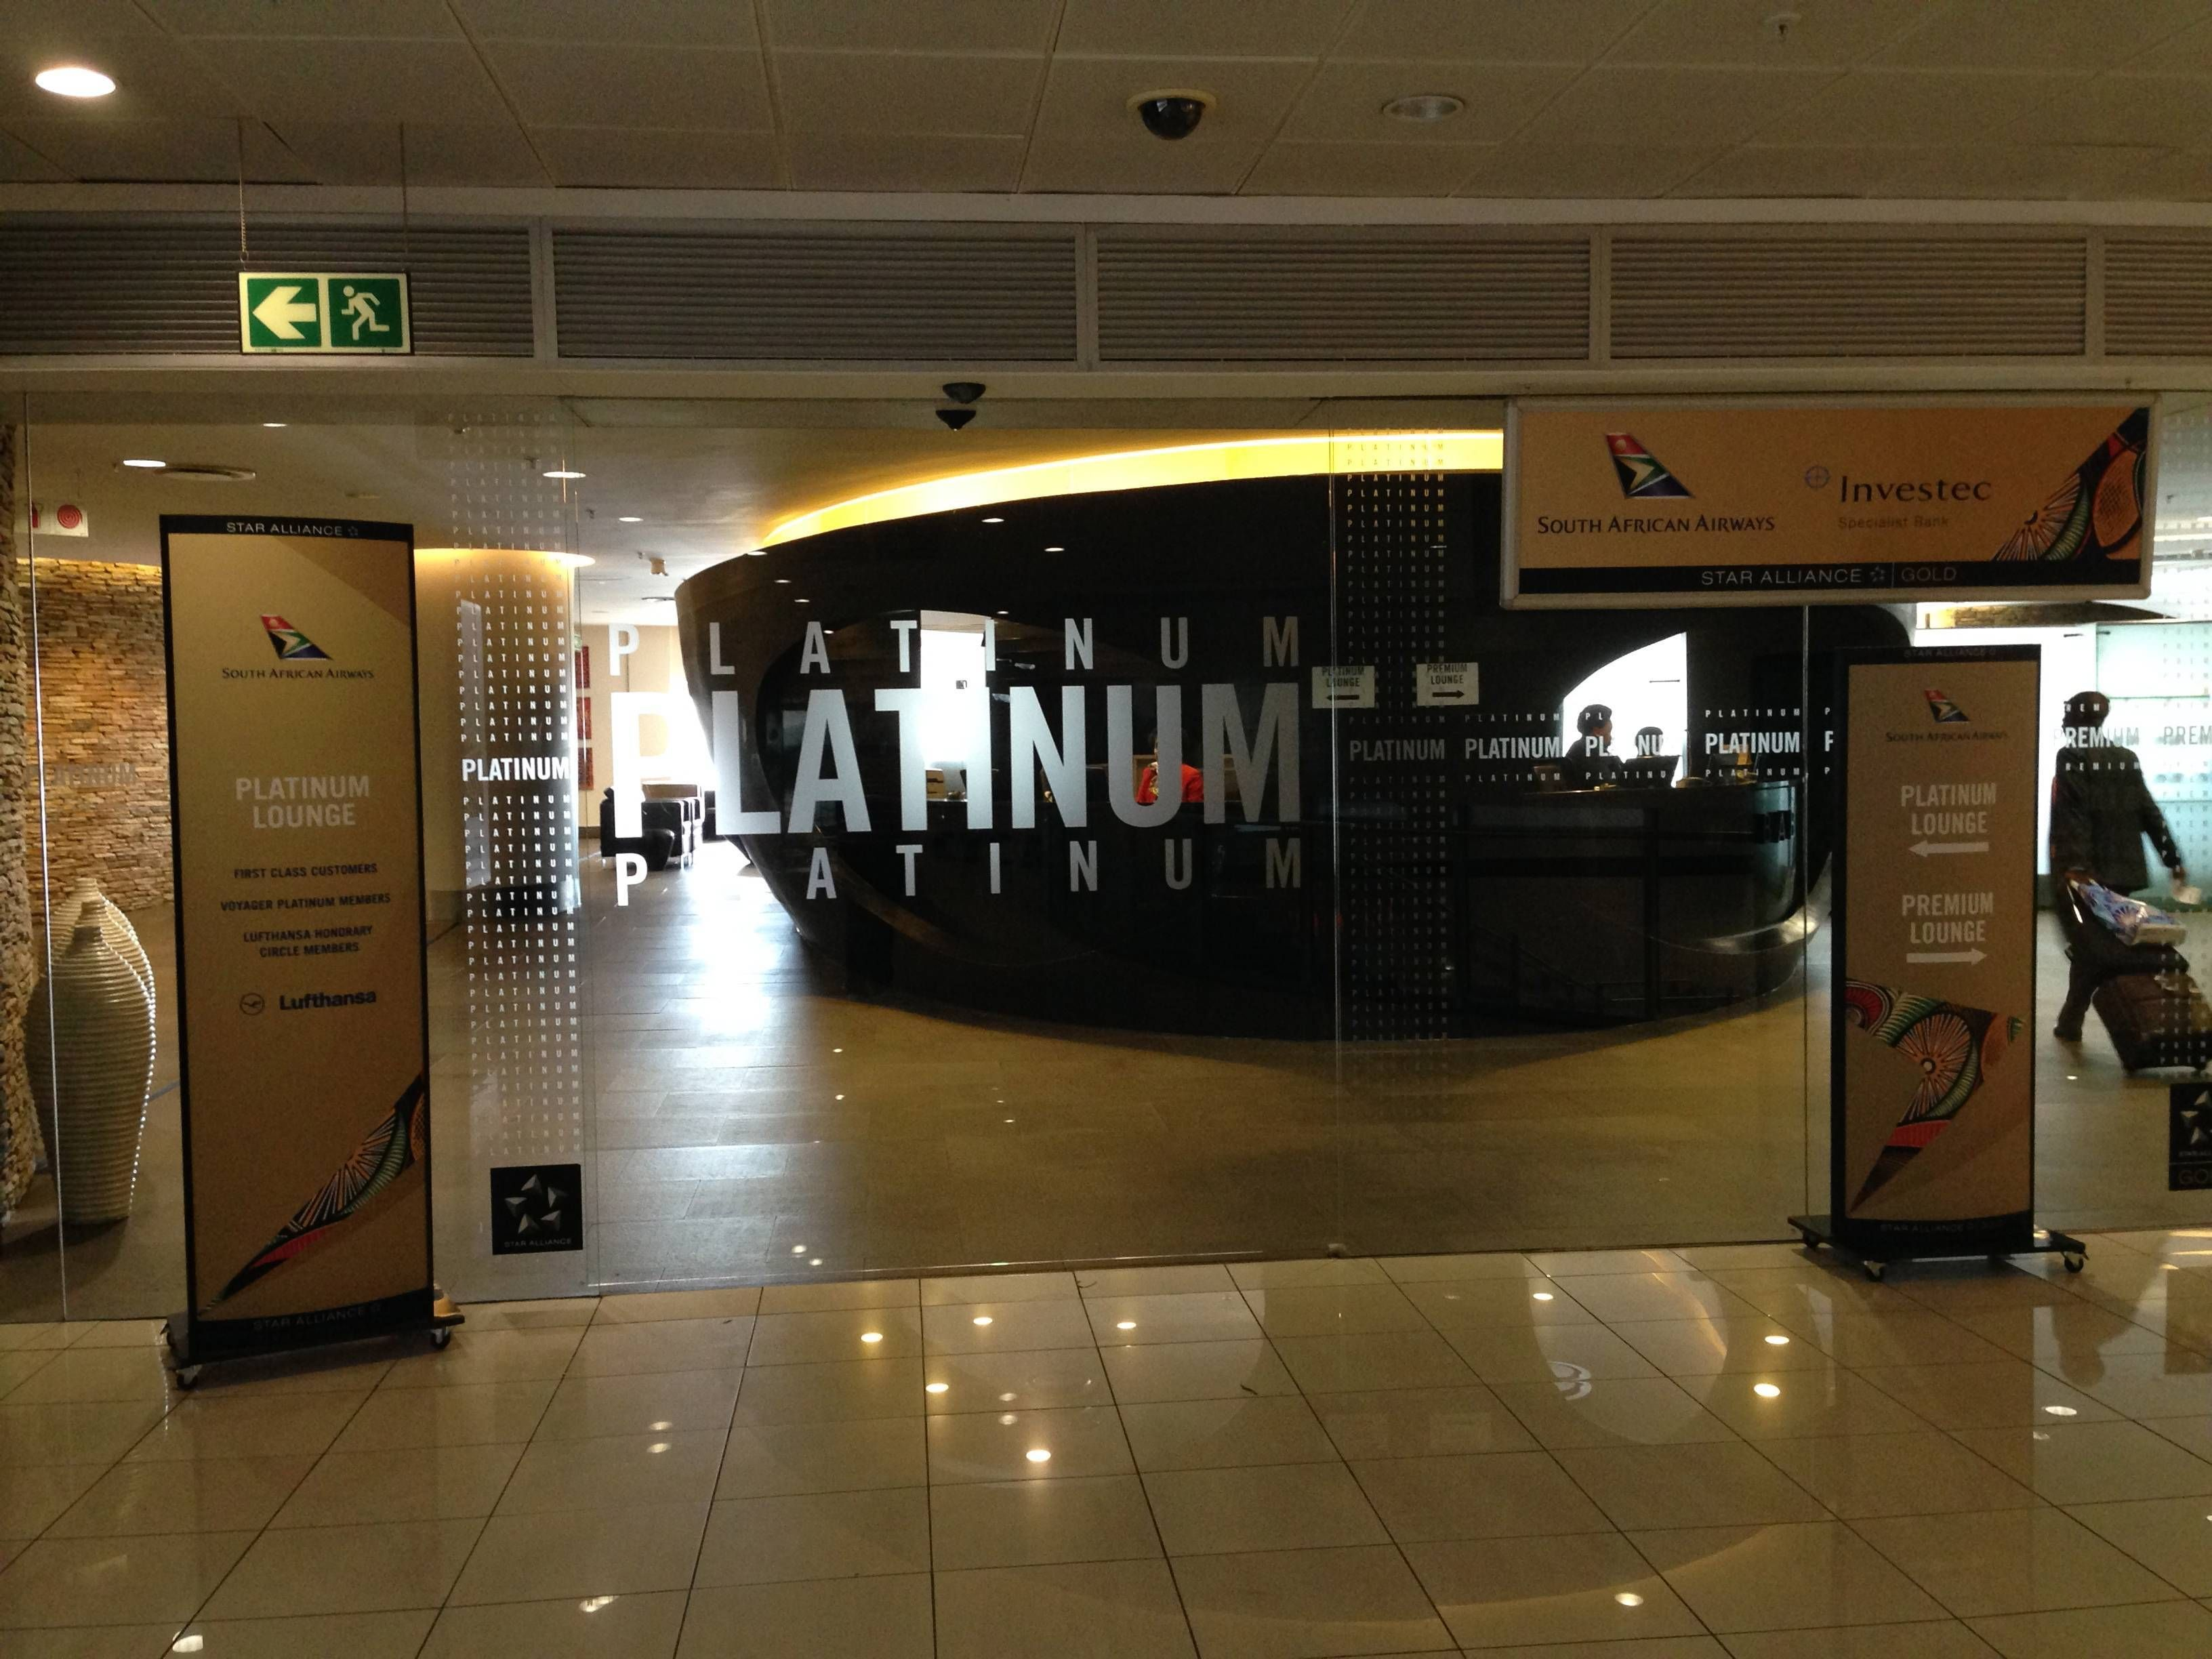 Platinum Lounge South African Airways Johannesburg